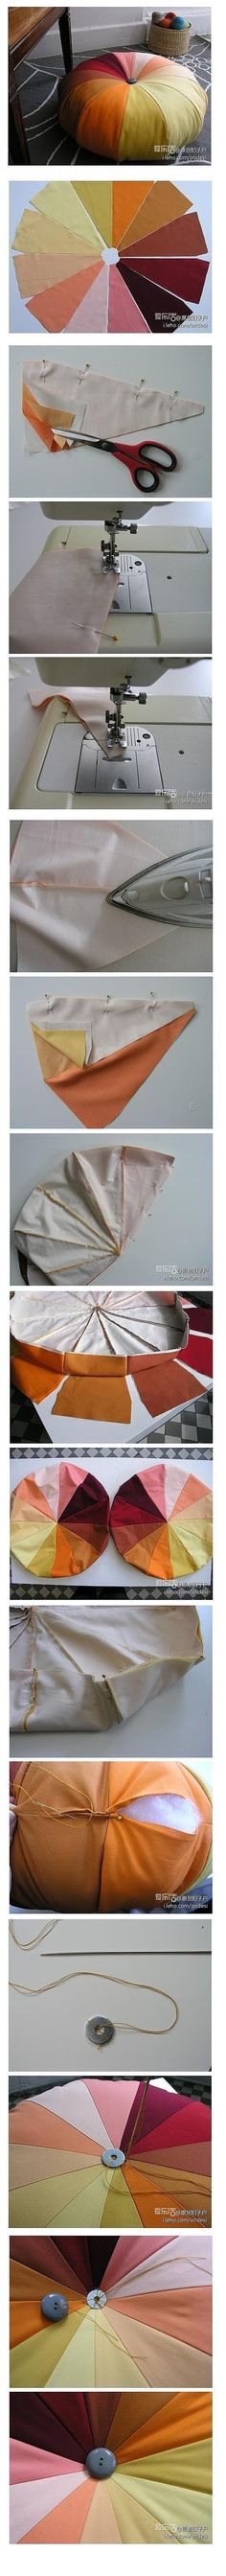 DIY pouf idea